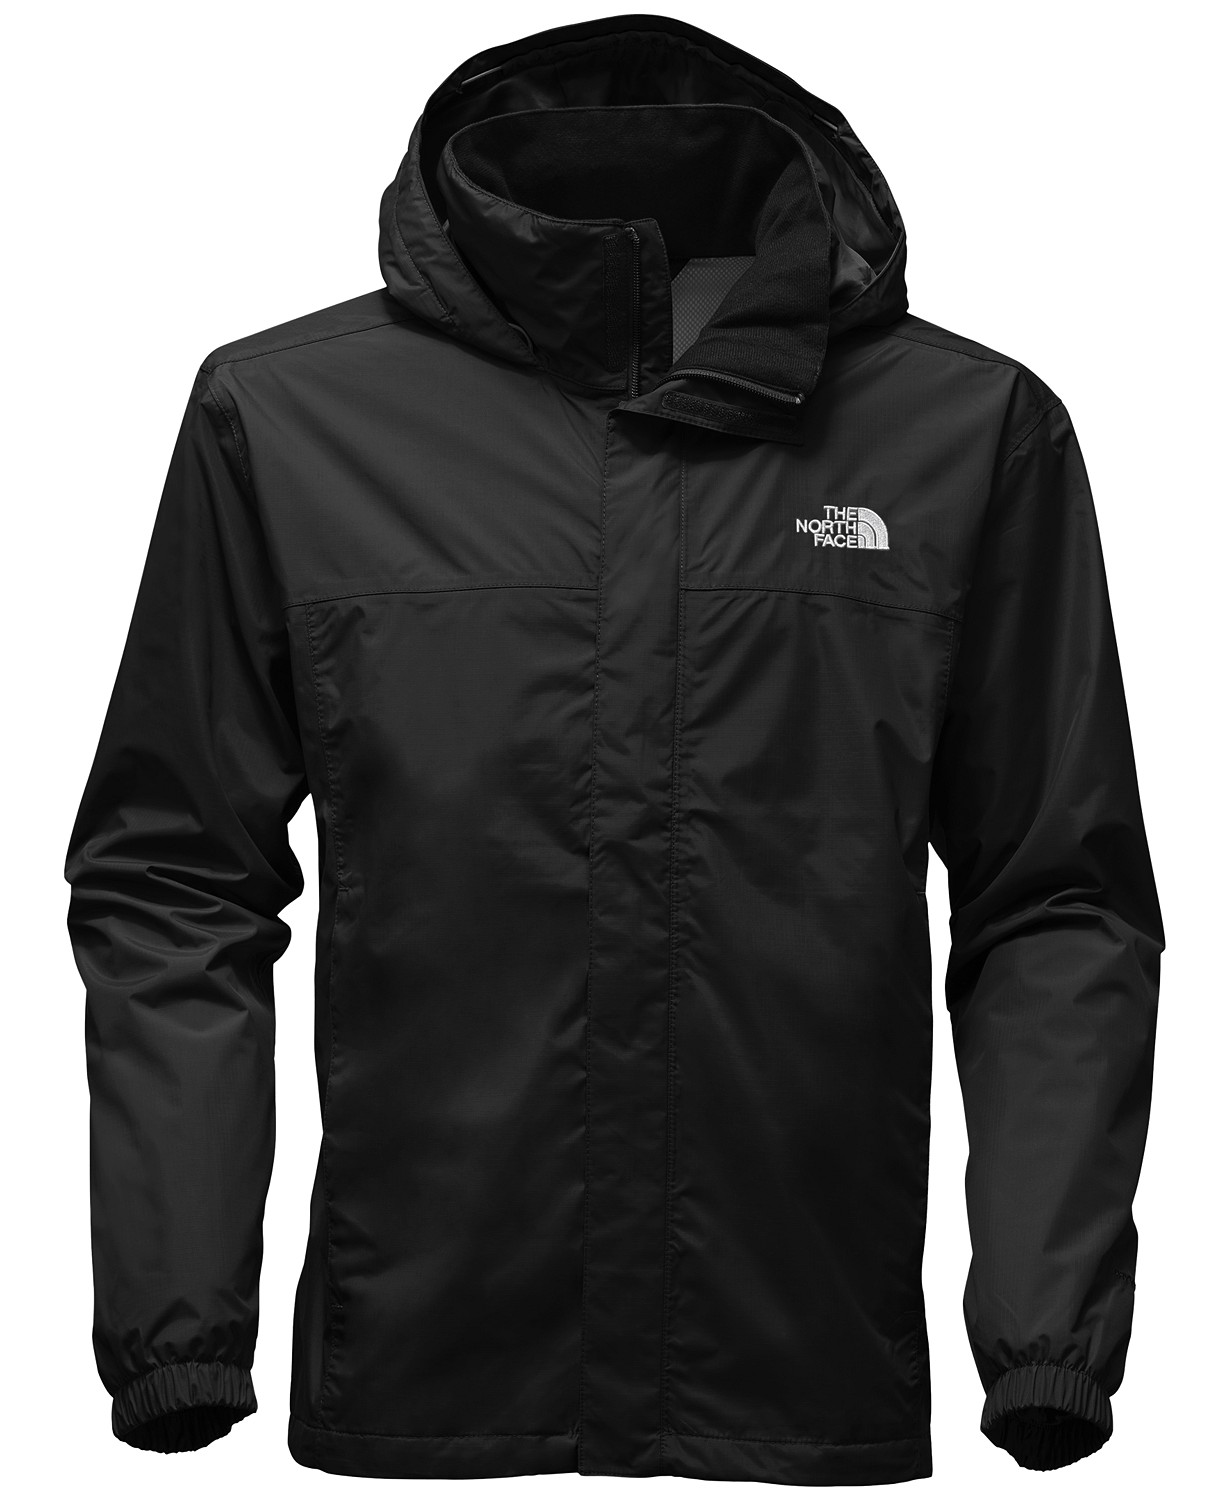 The North Face Resolve 2 Rain Jacket